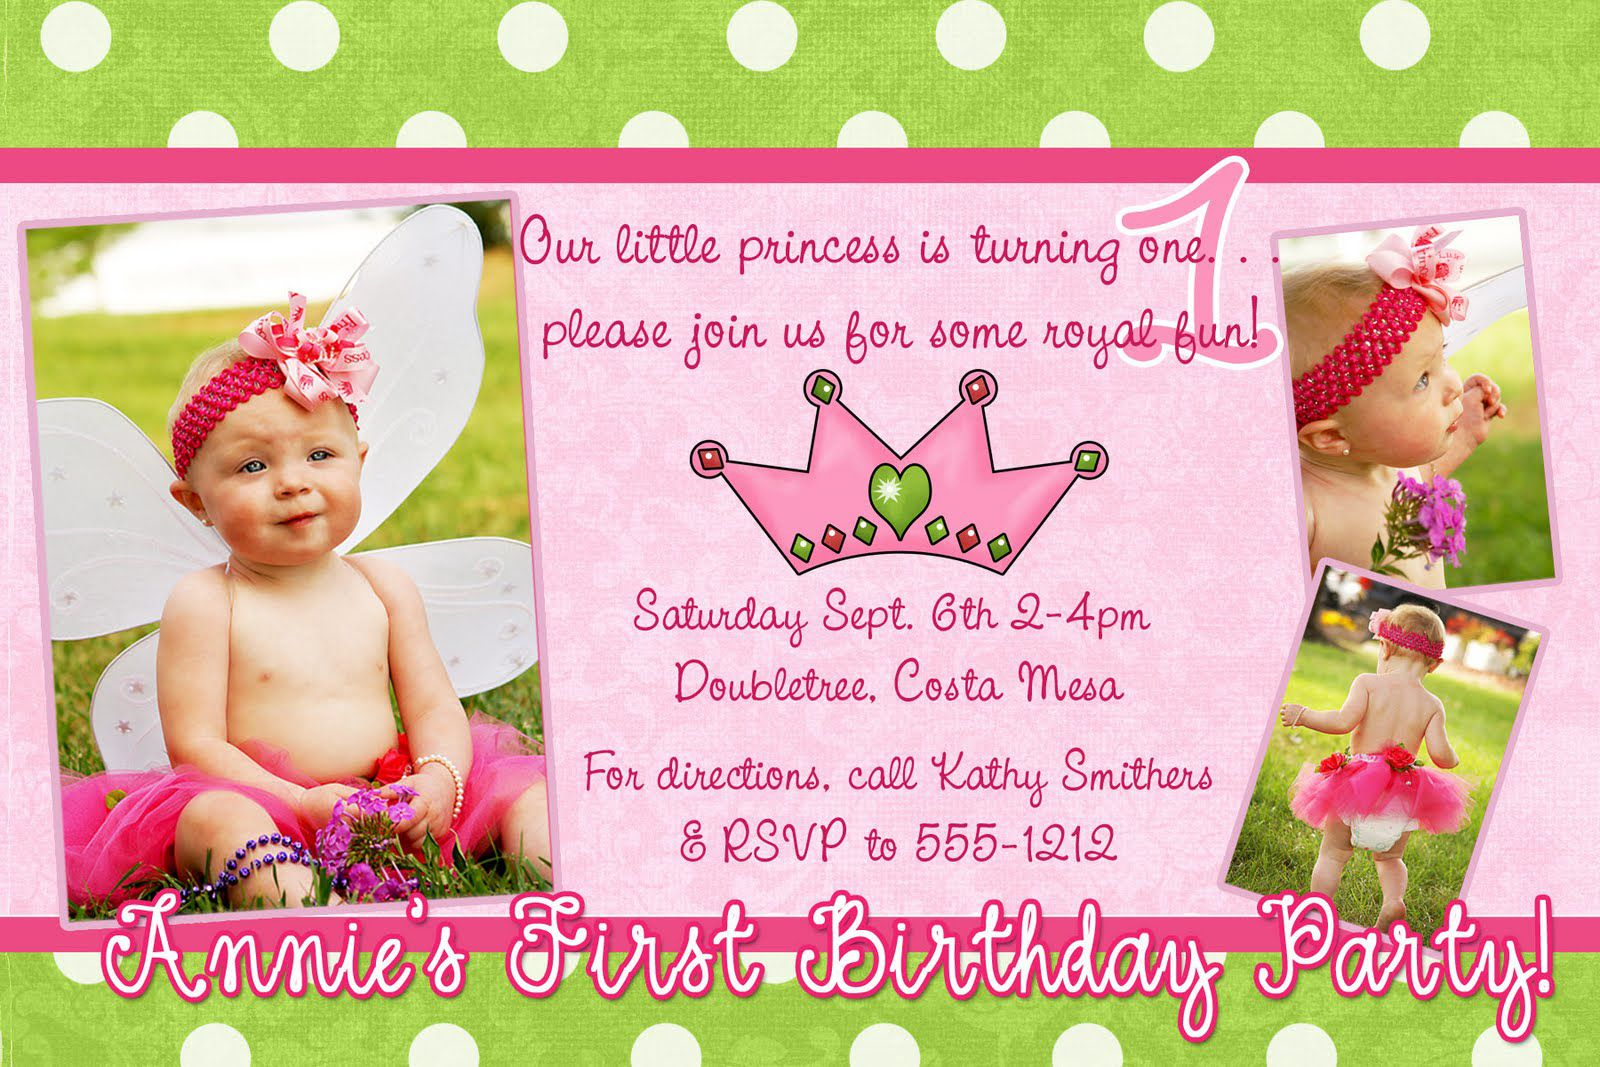 21 kids birthday invitation wording that we can make sample girl birthday invitation wording stopboris Images